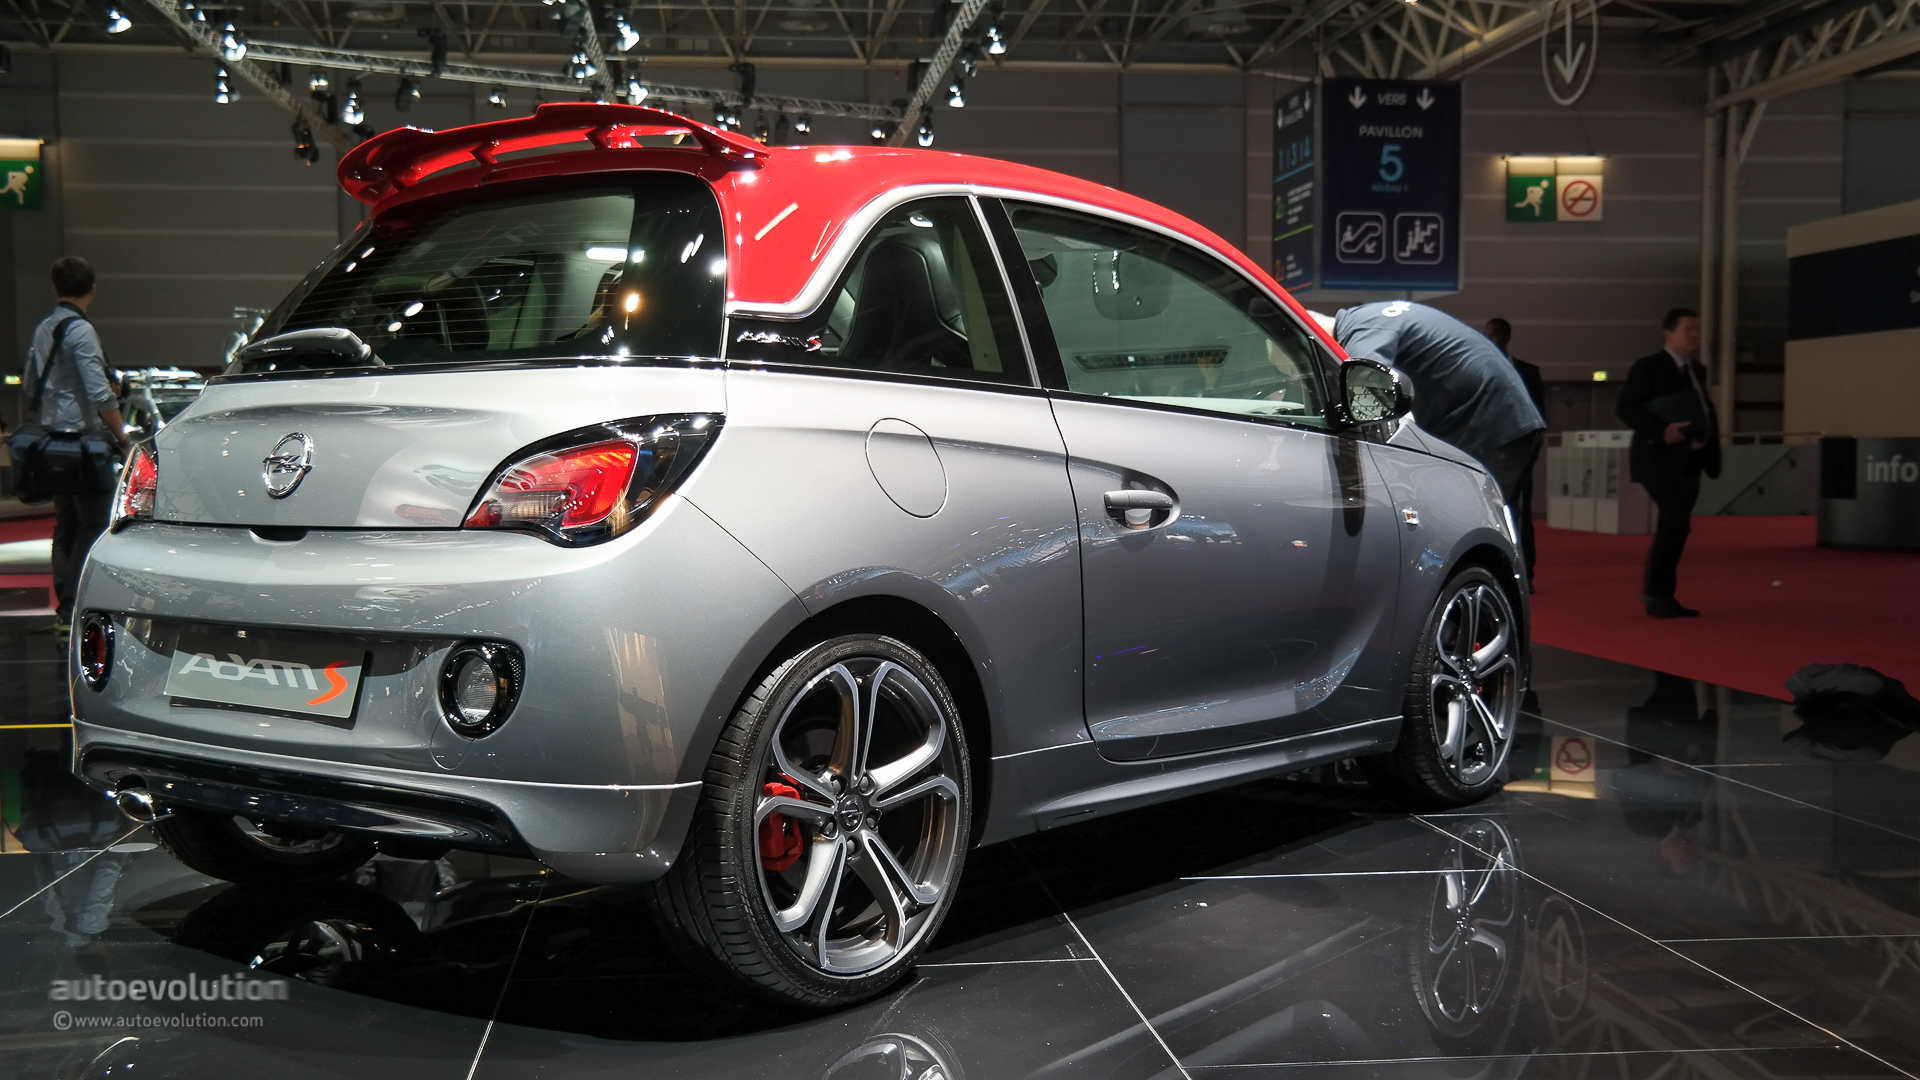 opel vauxhall adam s debuts in paris small in size big. Black Bedroom Furniture Sets. Home Design Ideas